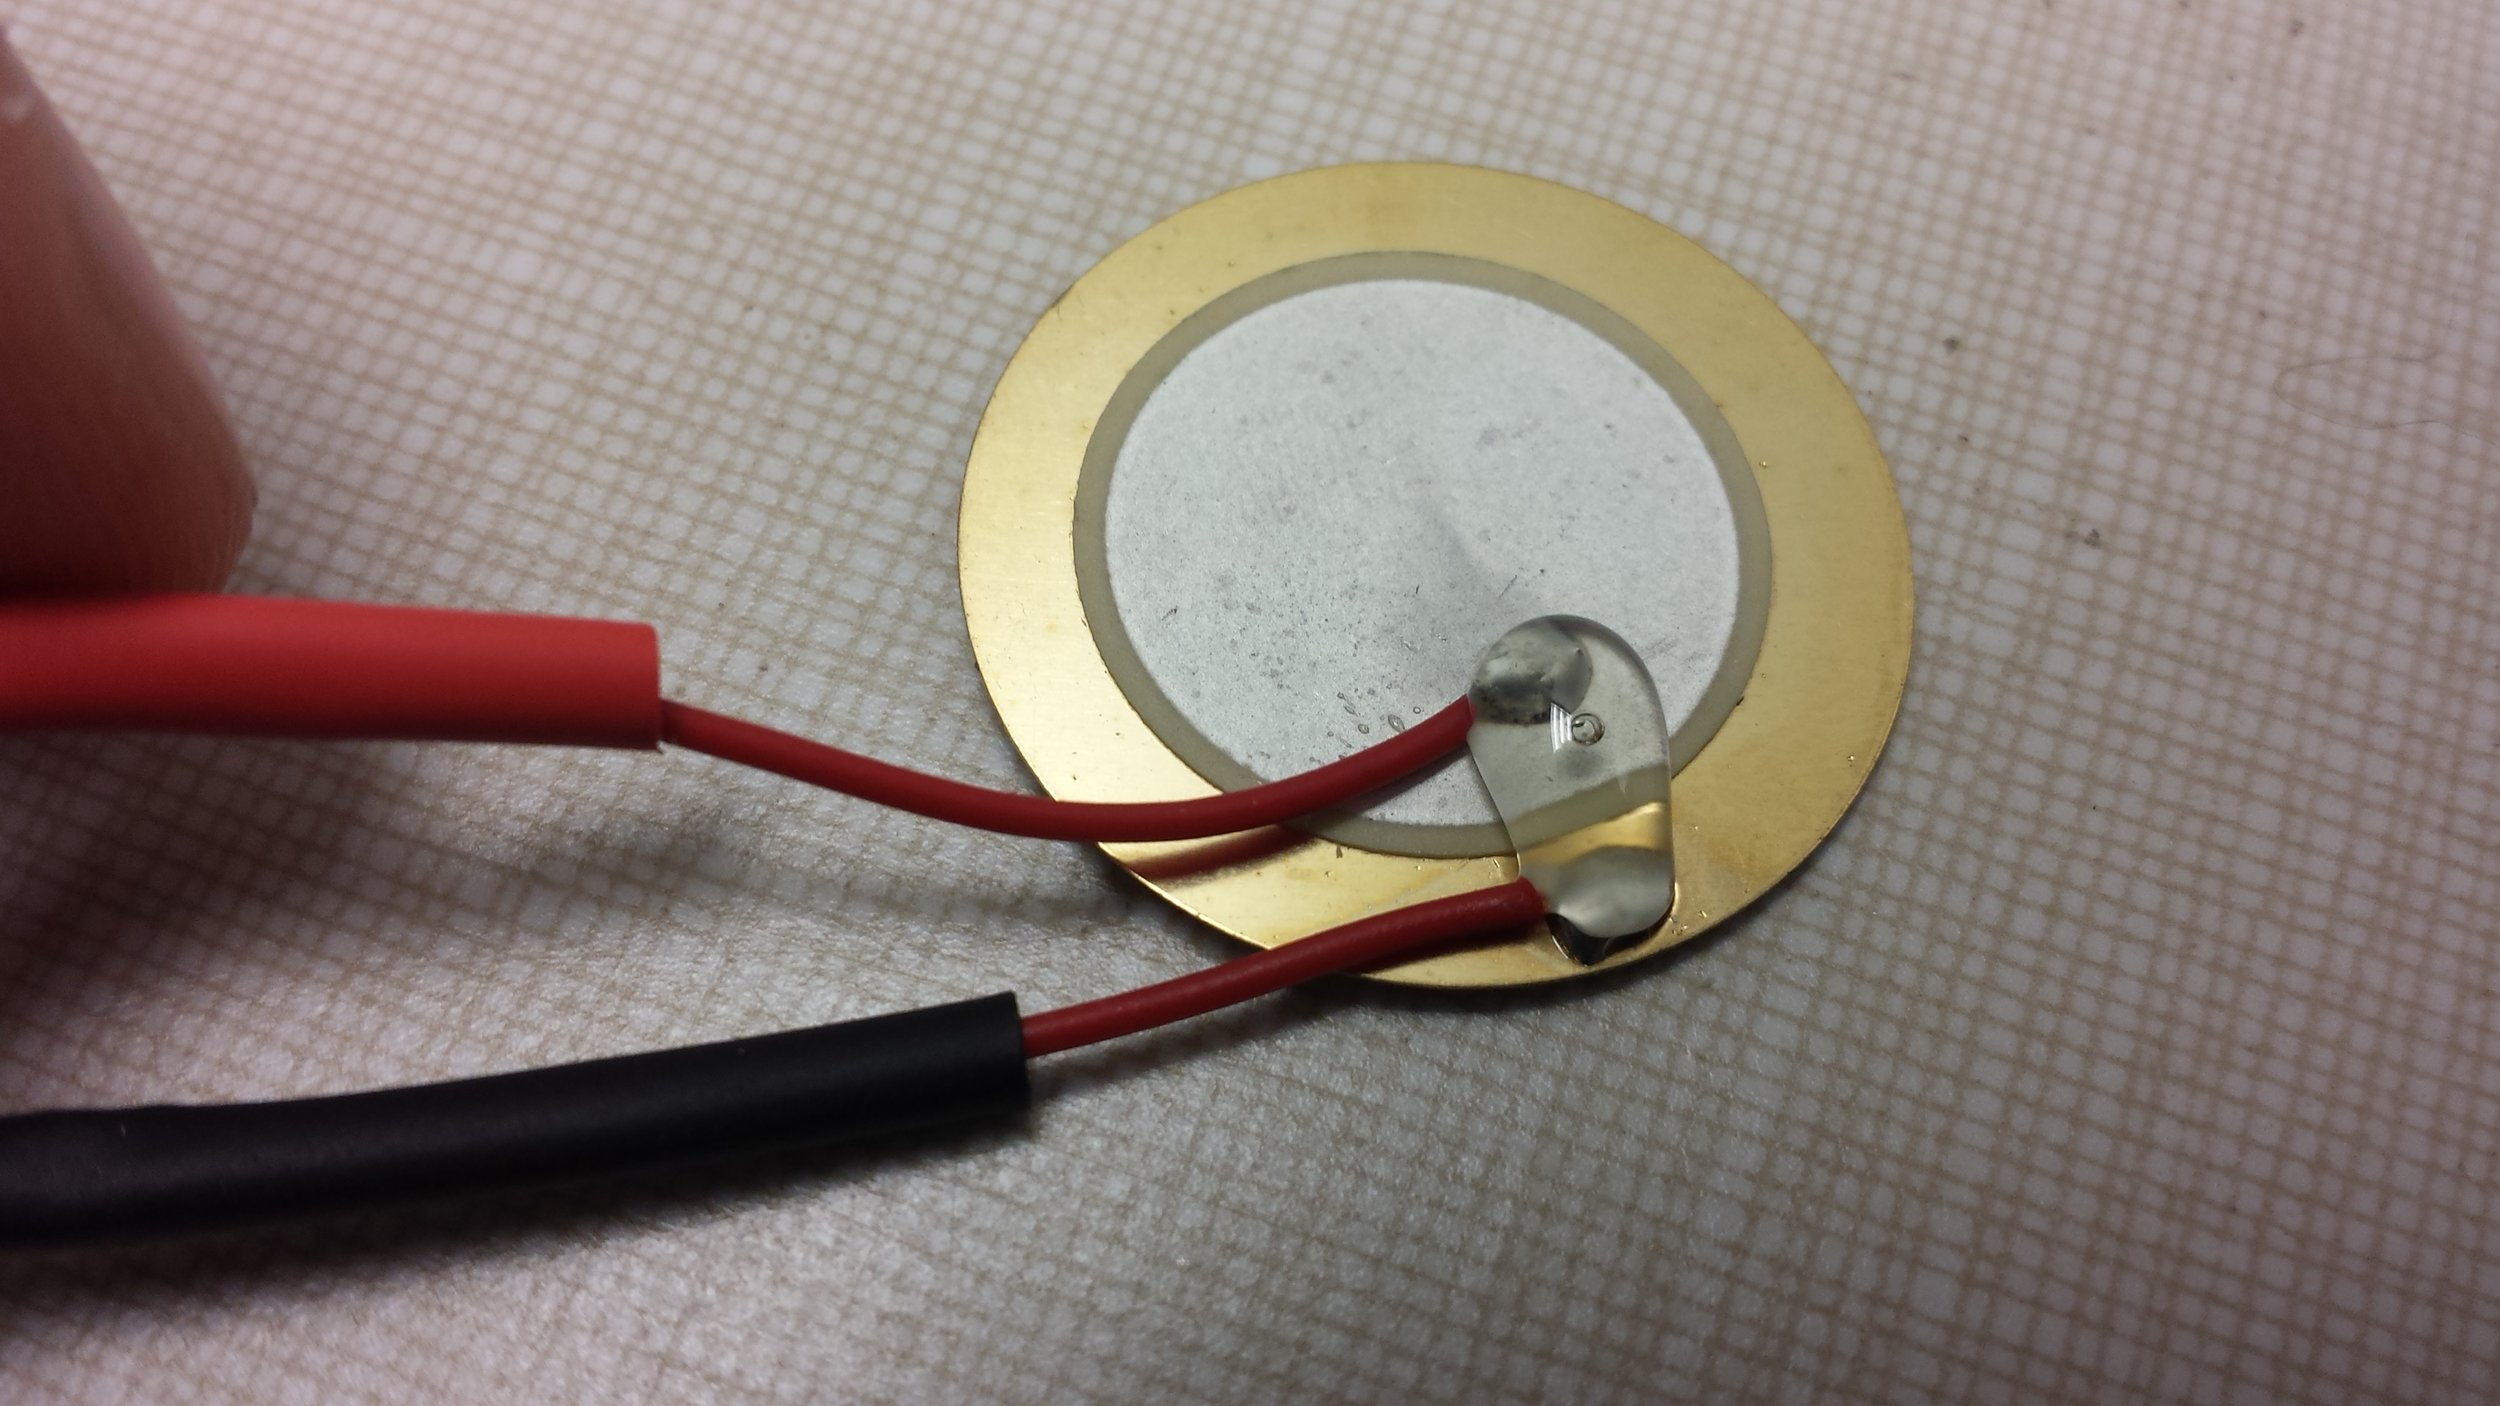 Hot glue between the two solder points also helped to prevent the ripping of wire